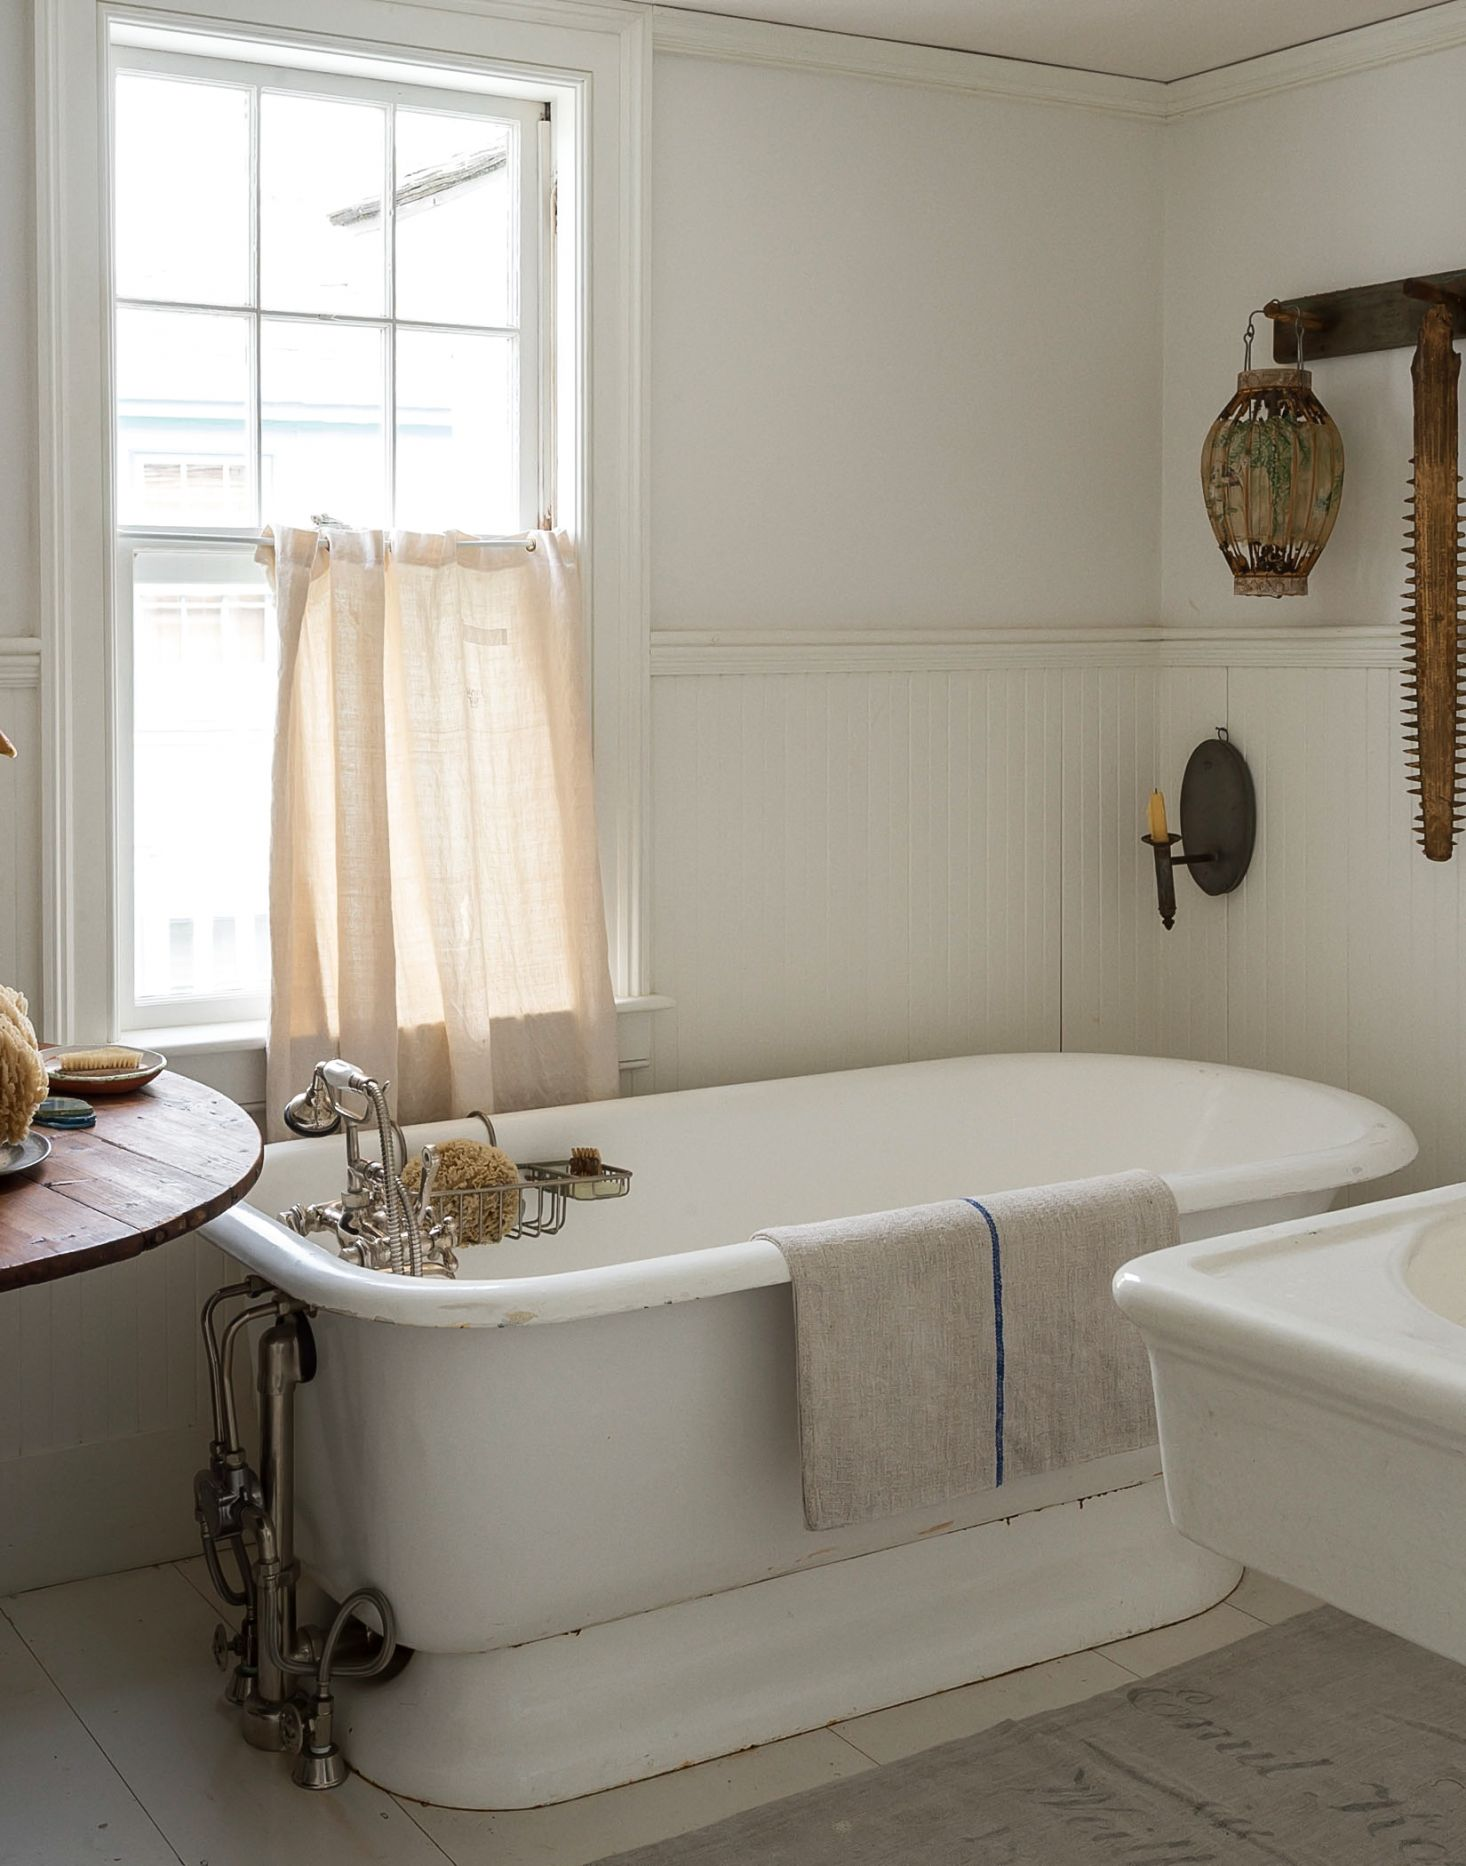 Remodeling 101 Romance In The Bath Built In Vs Freestanding